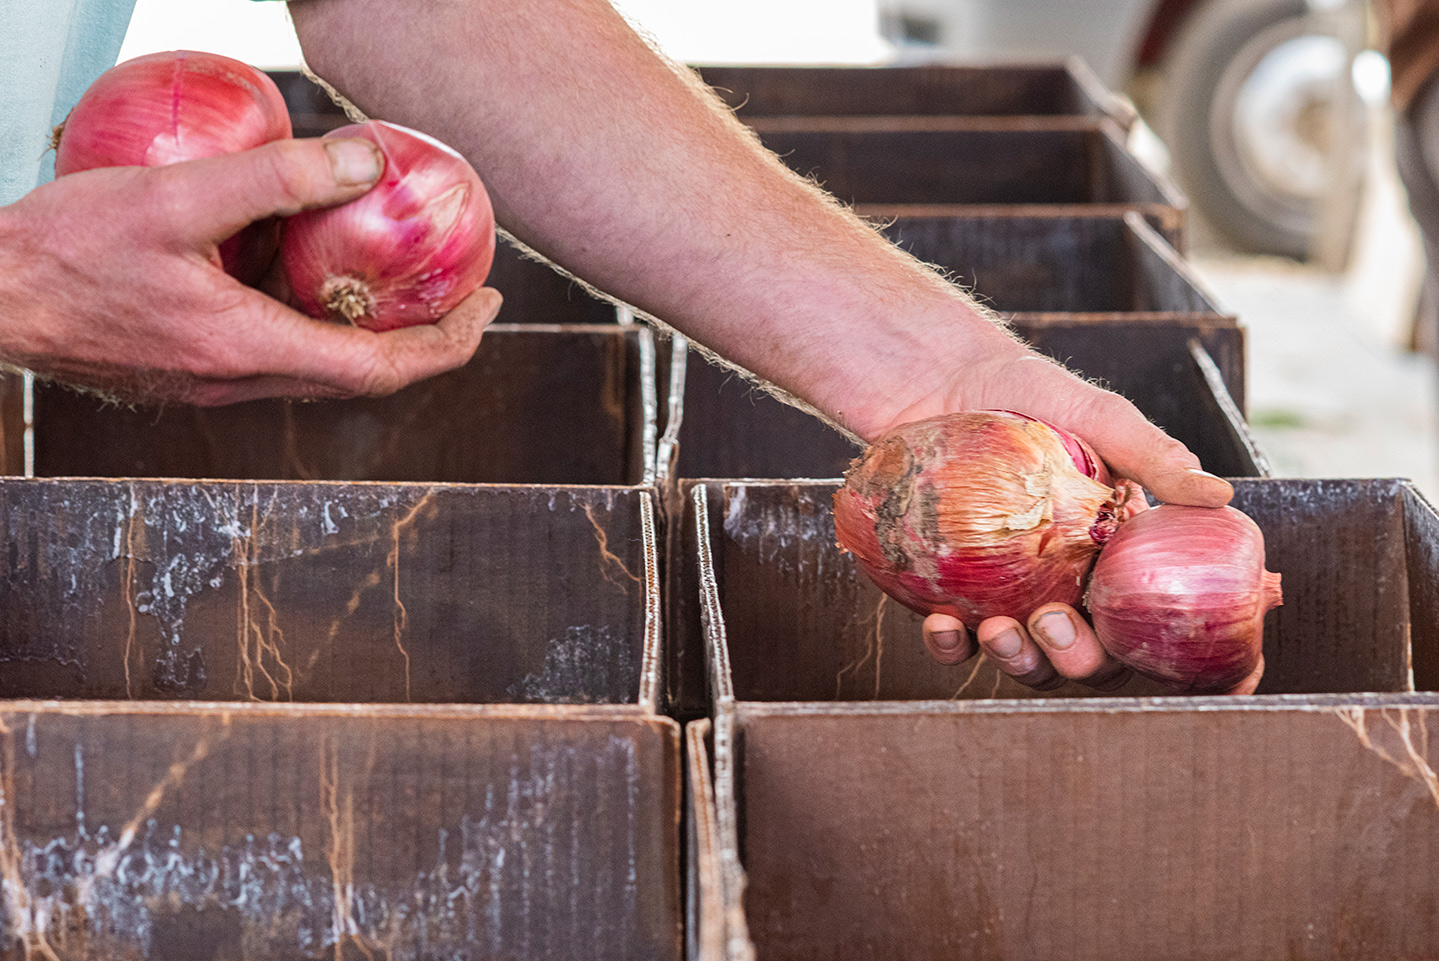 sorting onions into boxes